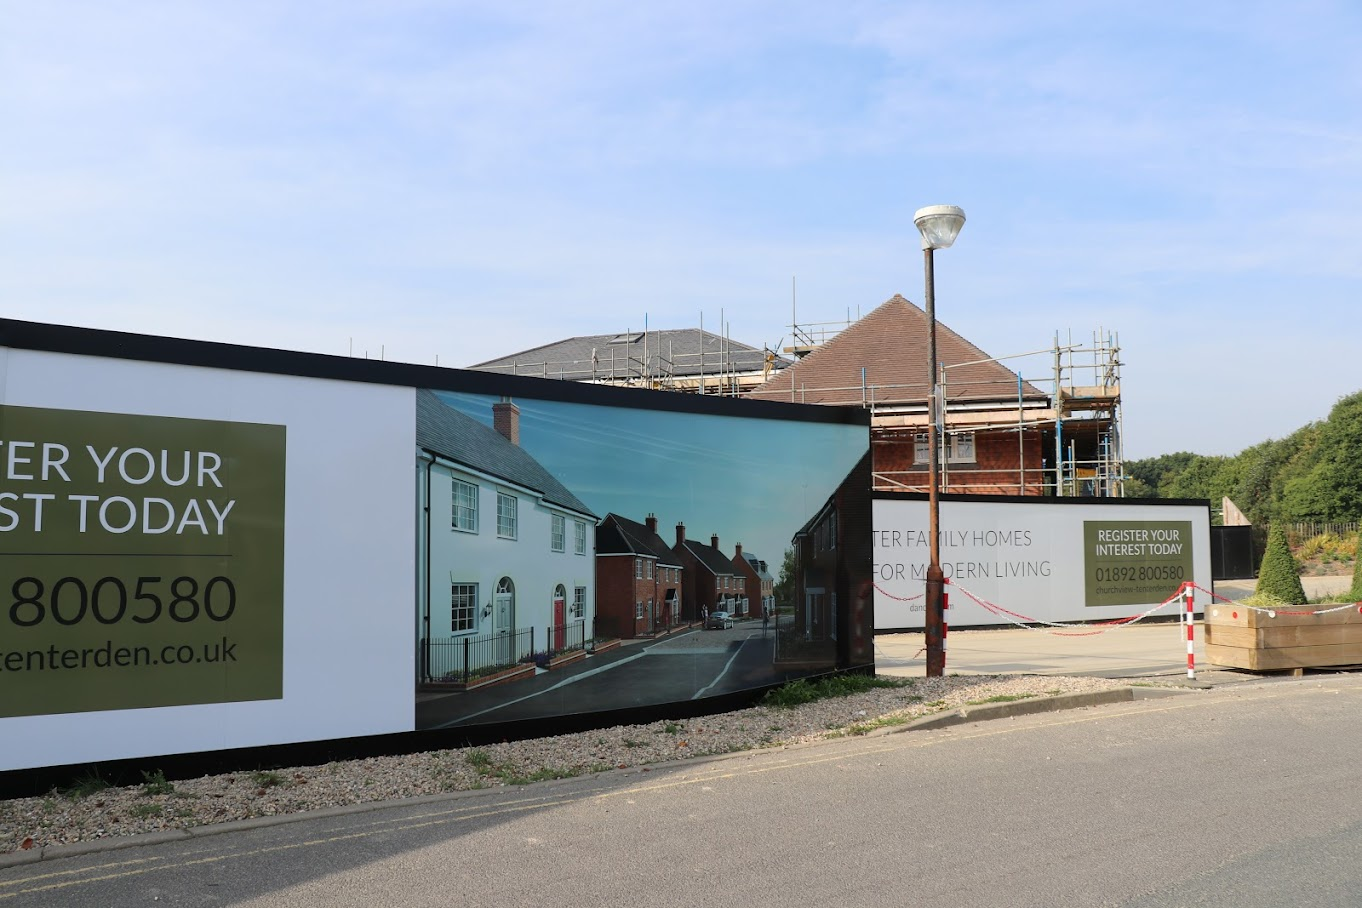 New houses in Tenterden - Three Fields, Church View, McCarthy Stone Retirement apartments